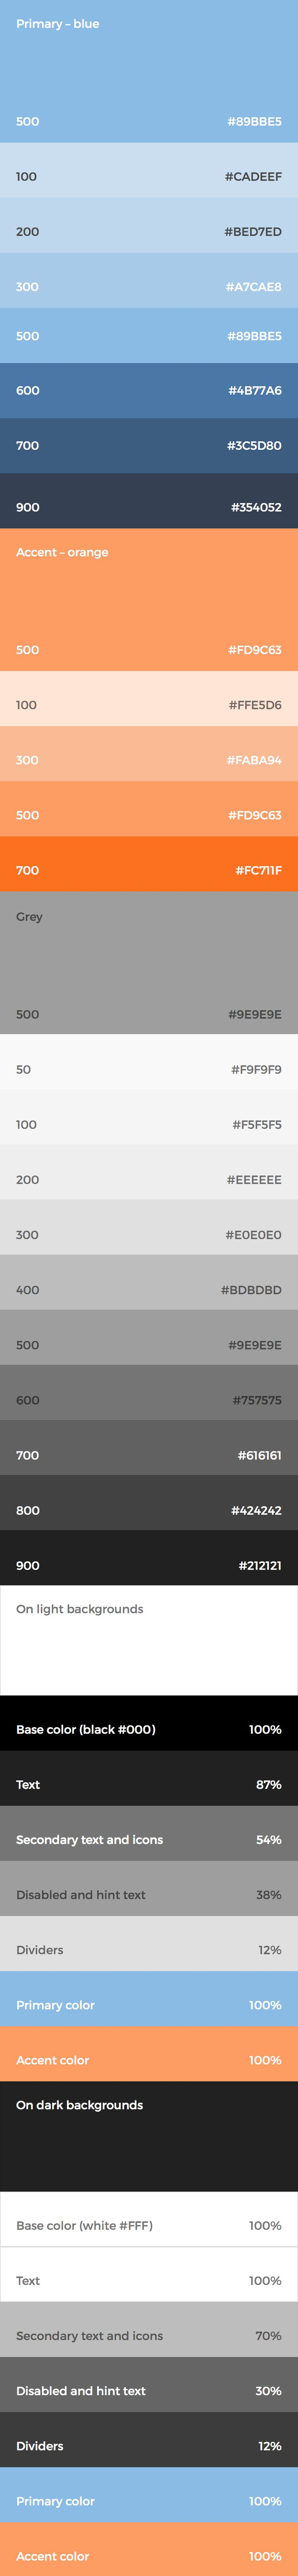 Creating a palette using the guidelines in MD with primary and accent color families. Also added typography recommendations with percentages of black and white colors when placing text on light and dark backgrounds. This helps a lot when coding.